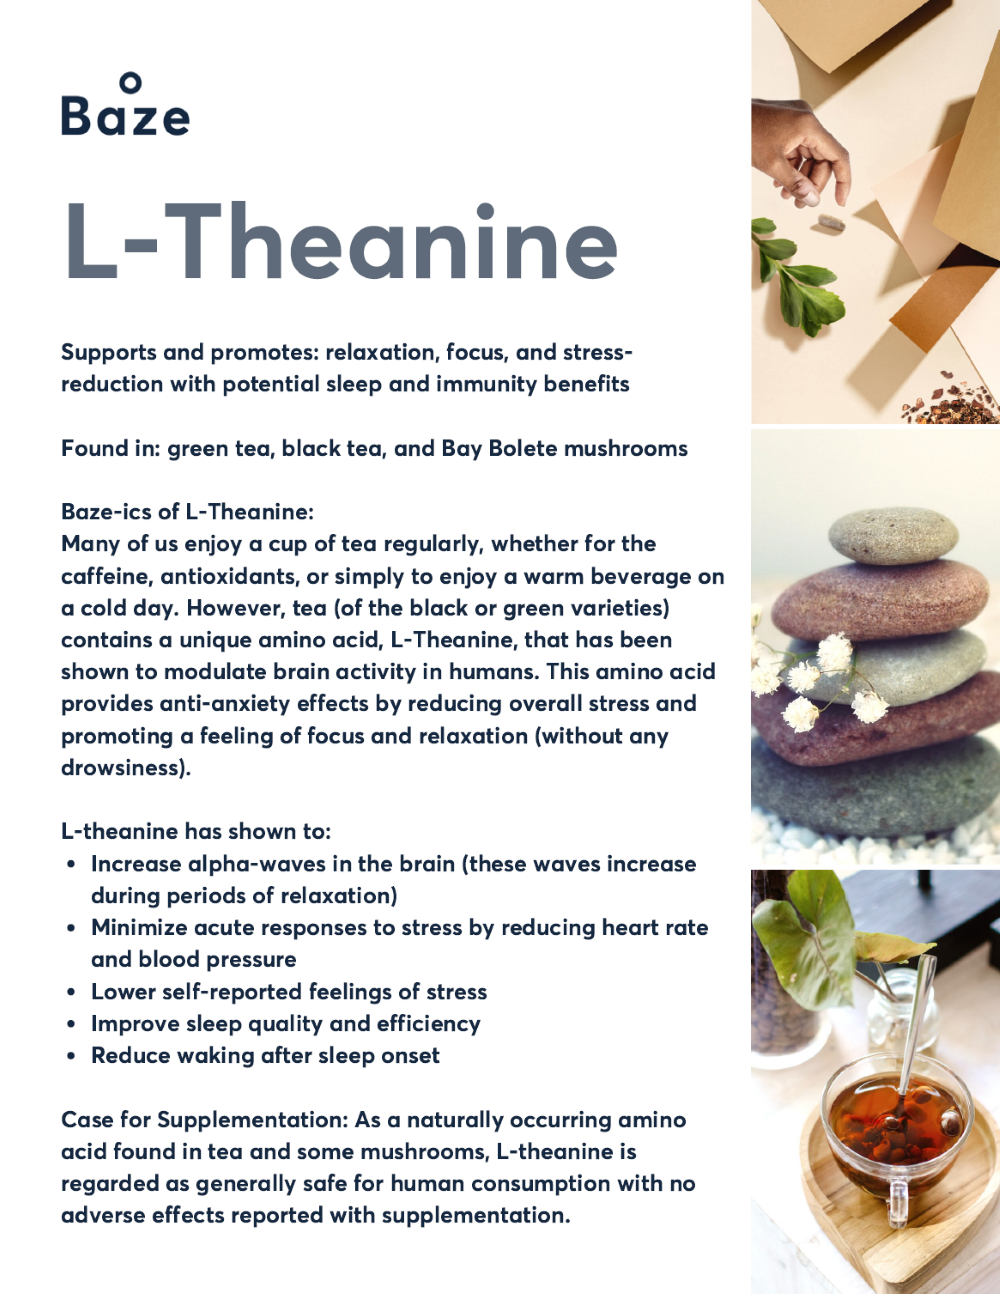 Health Benefits of L-Theanine